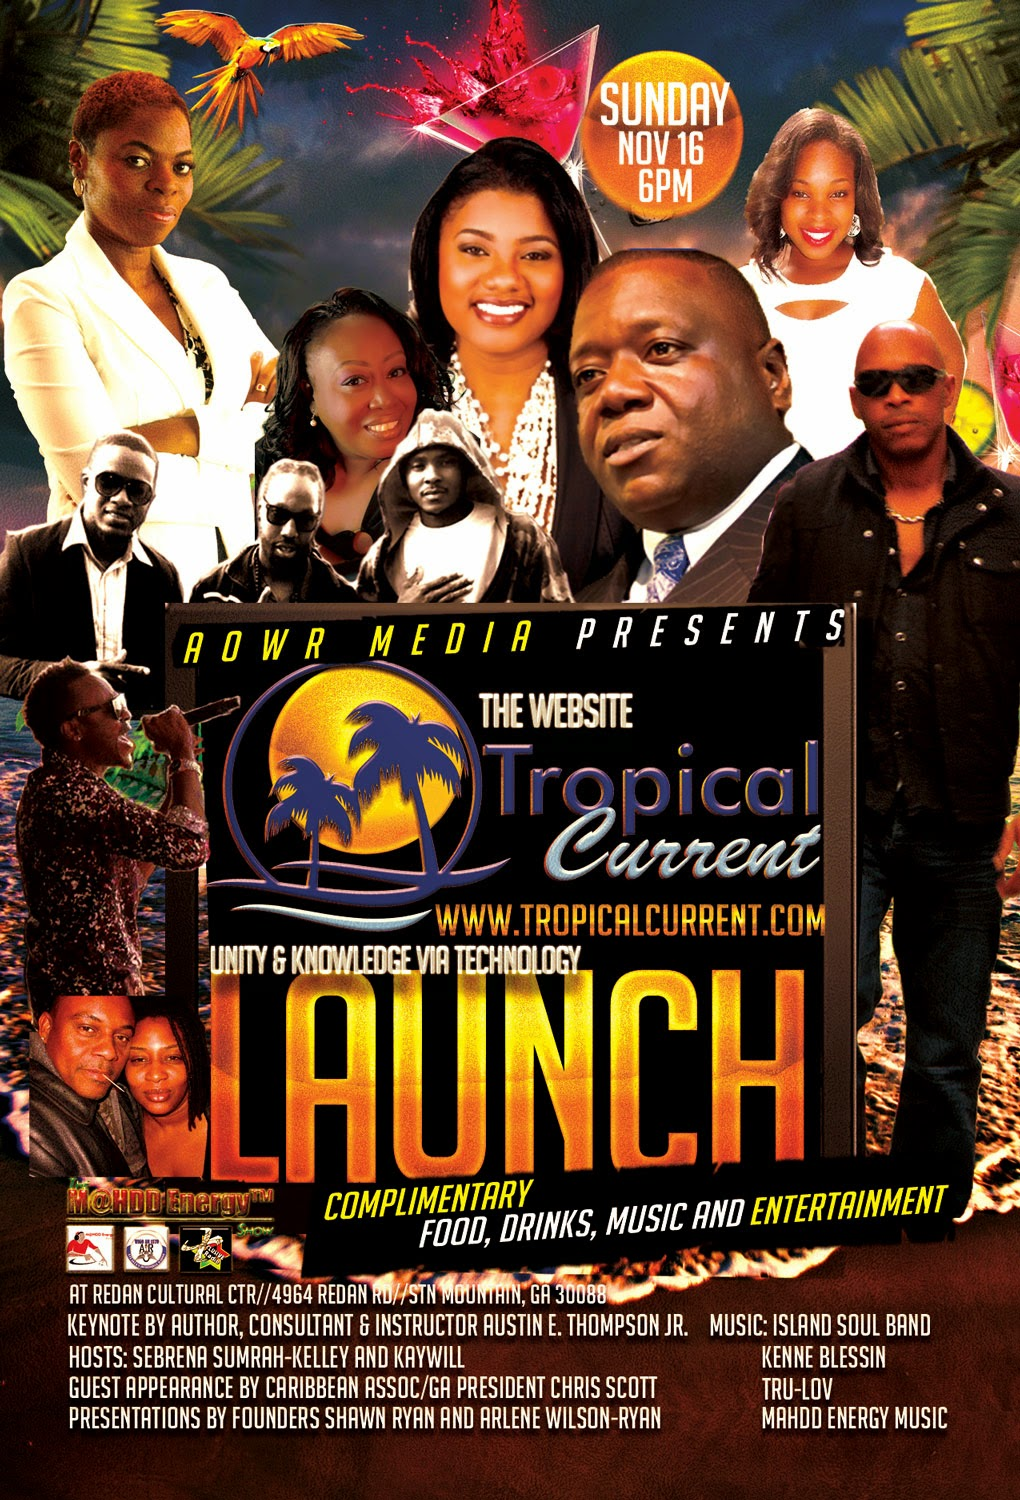 Tropical Current Launch - You are invited